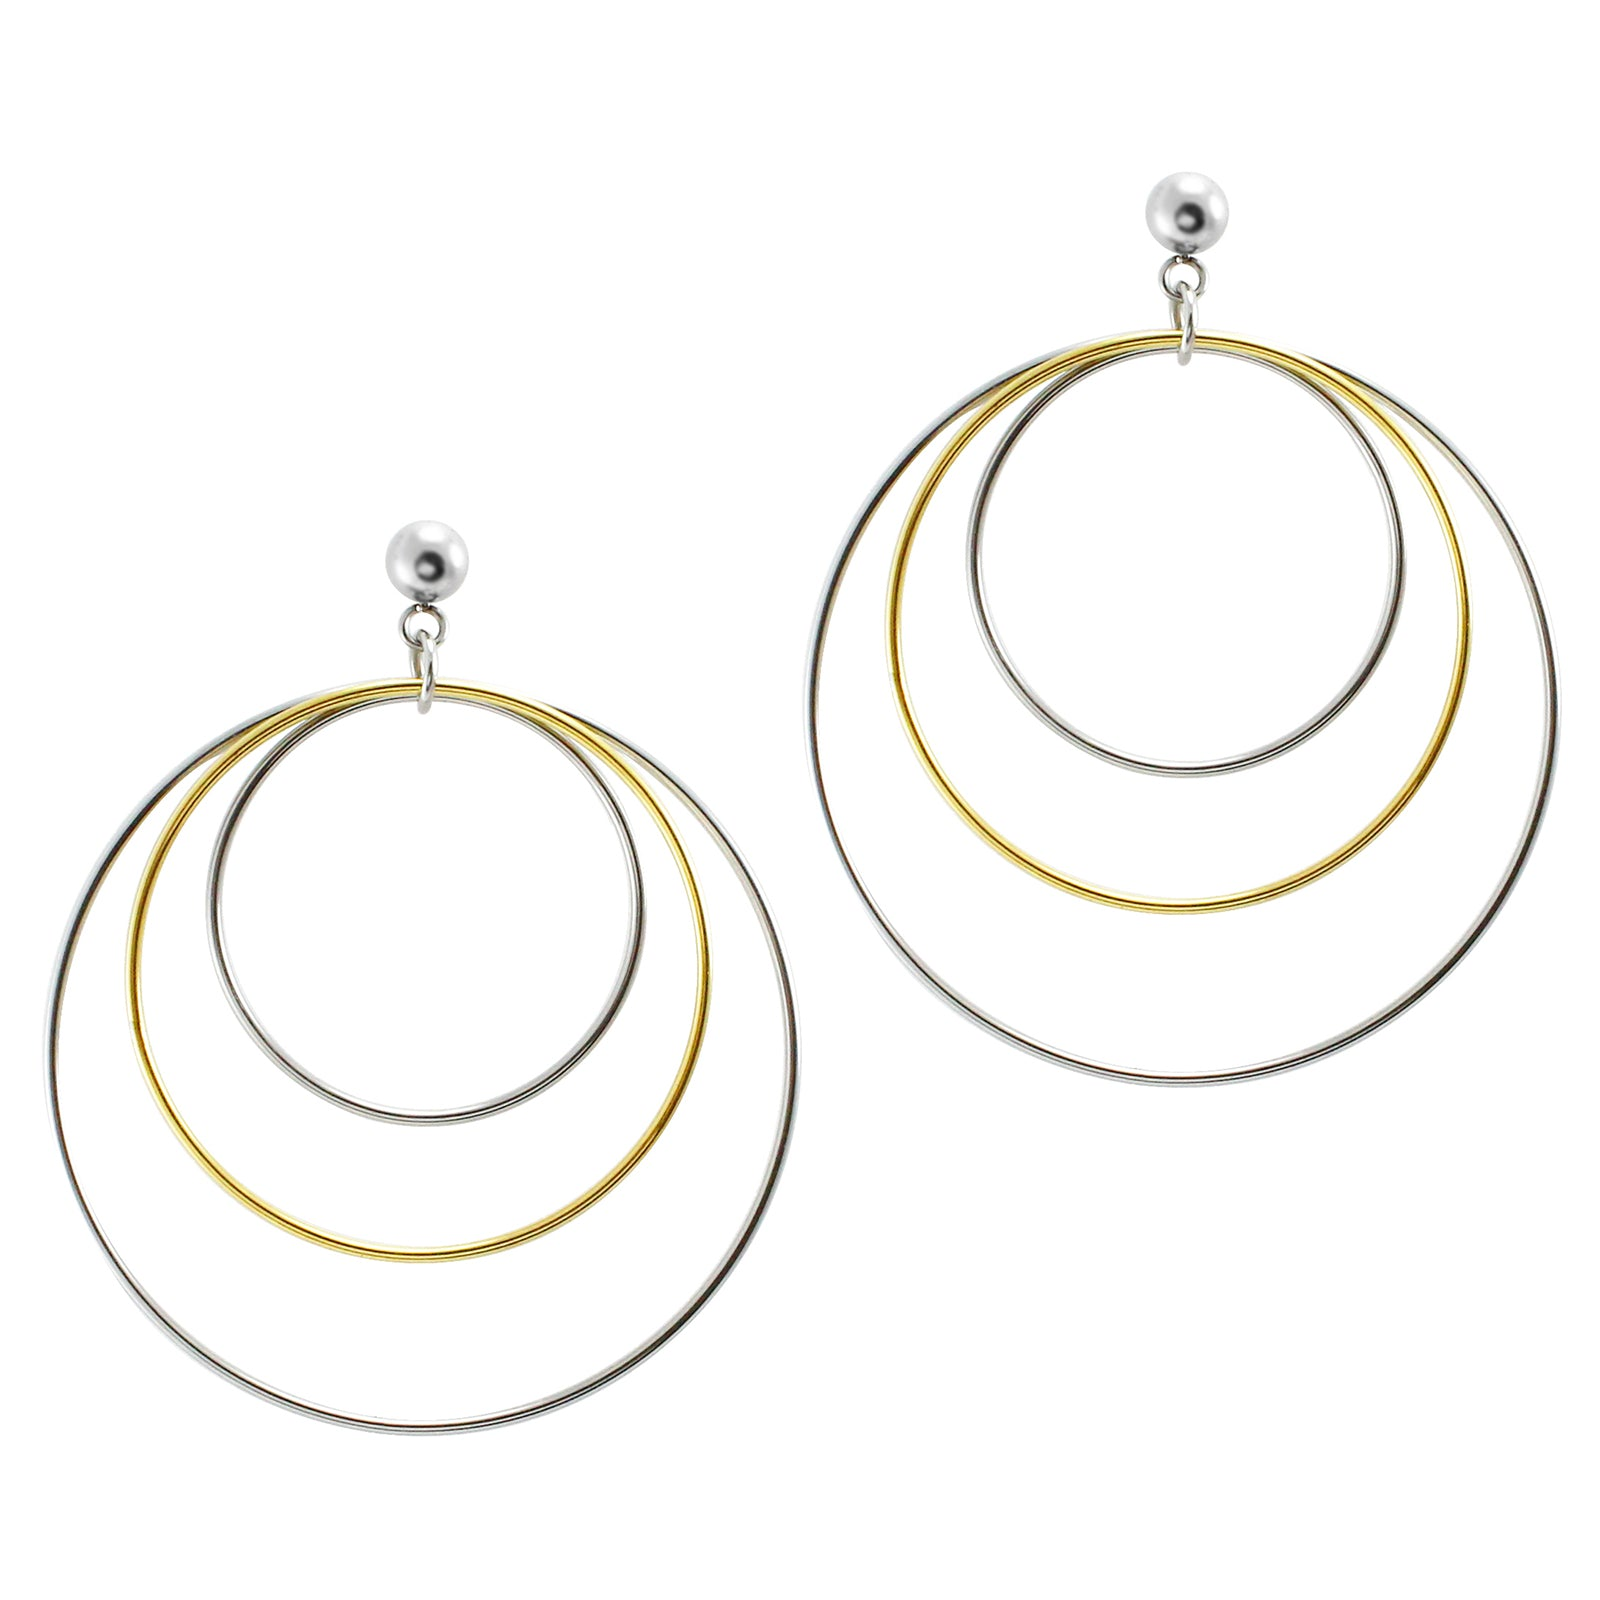 MNC-ER438-B Stainless Steel & Gold Circle Earrings